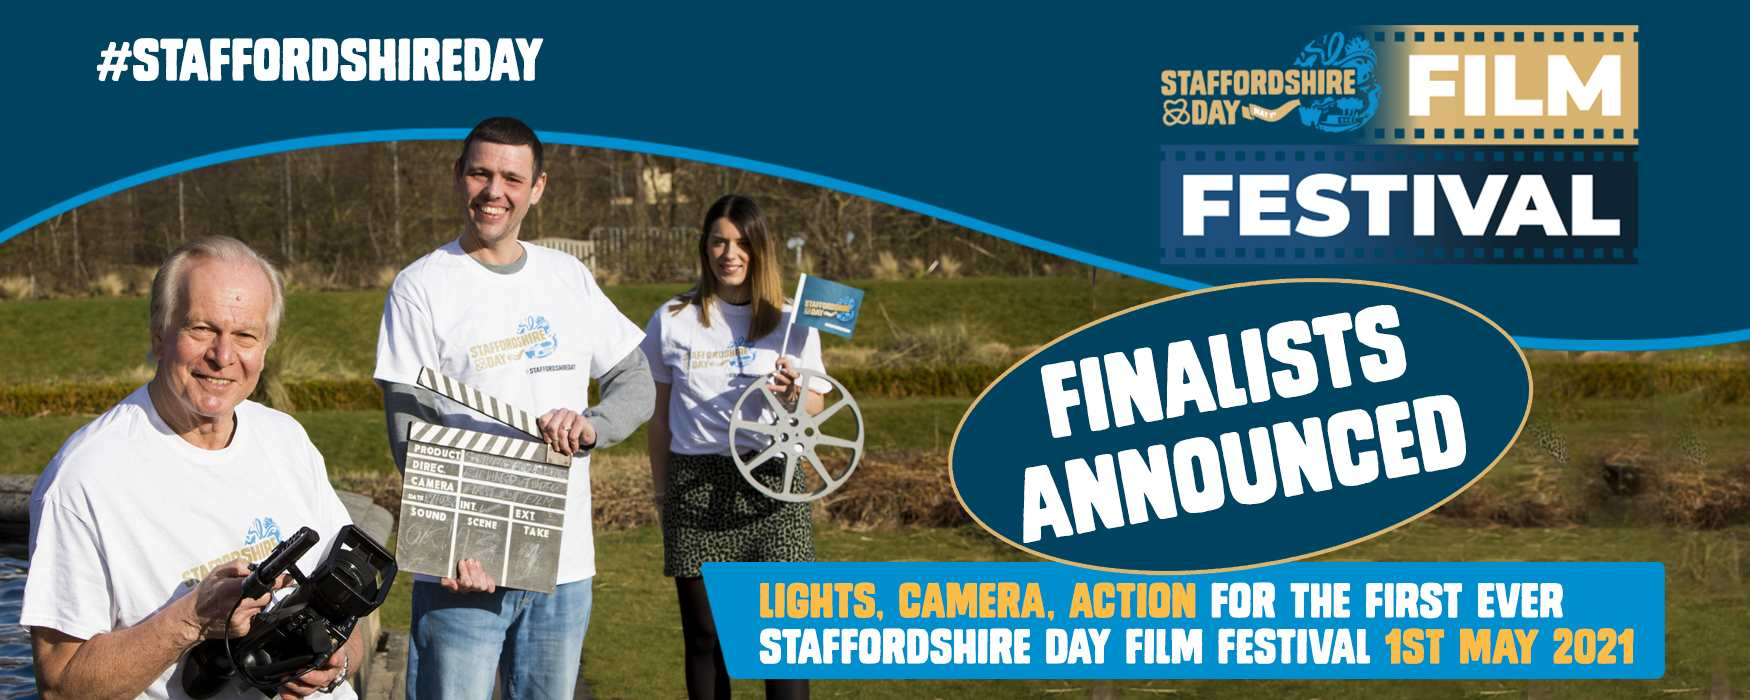 Staffordshire Day Film Festival infographic. Click to visit the film festival blog page with details of finalists.